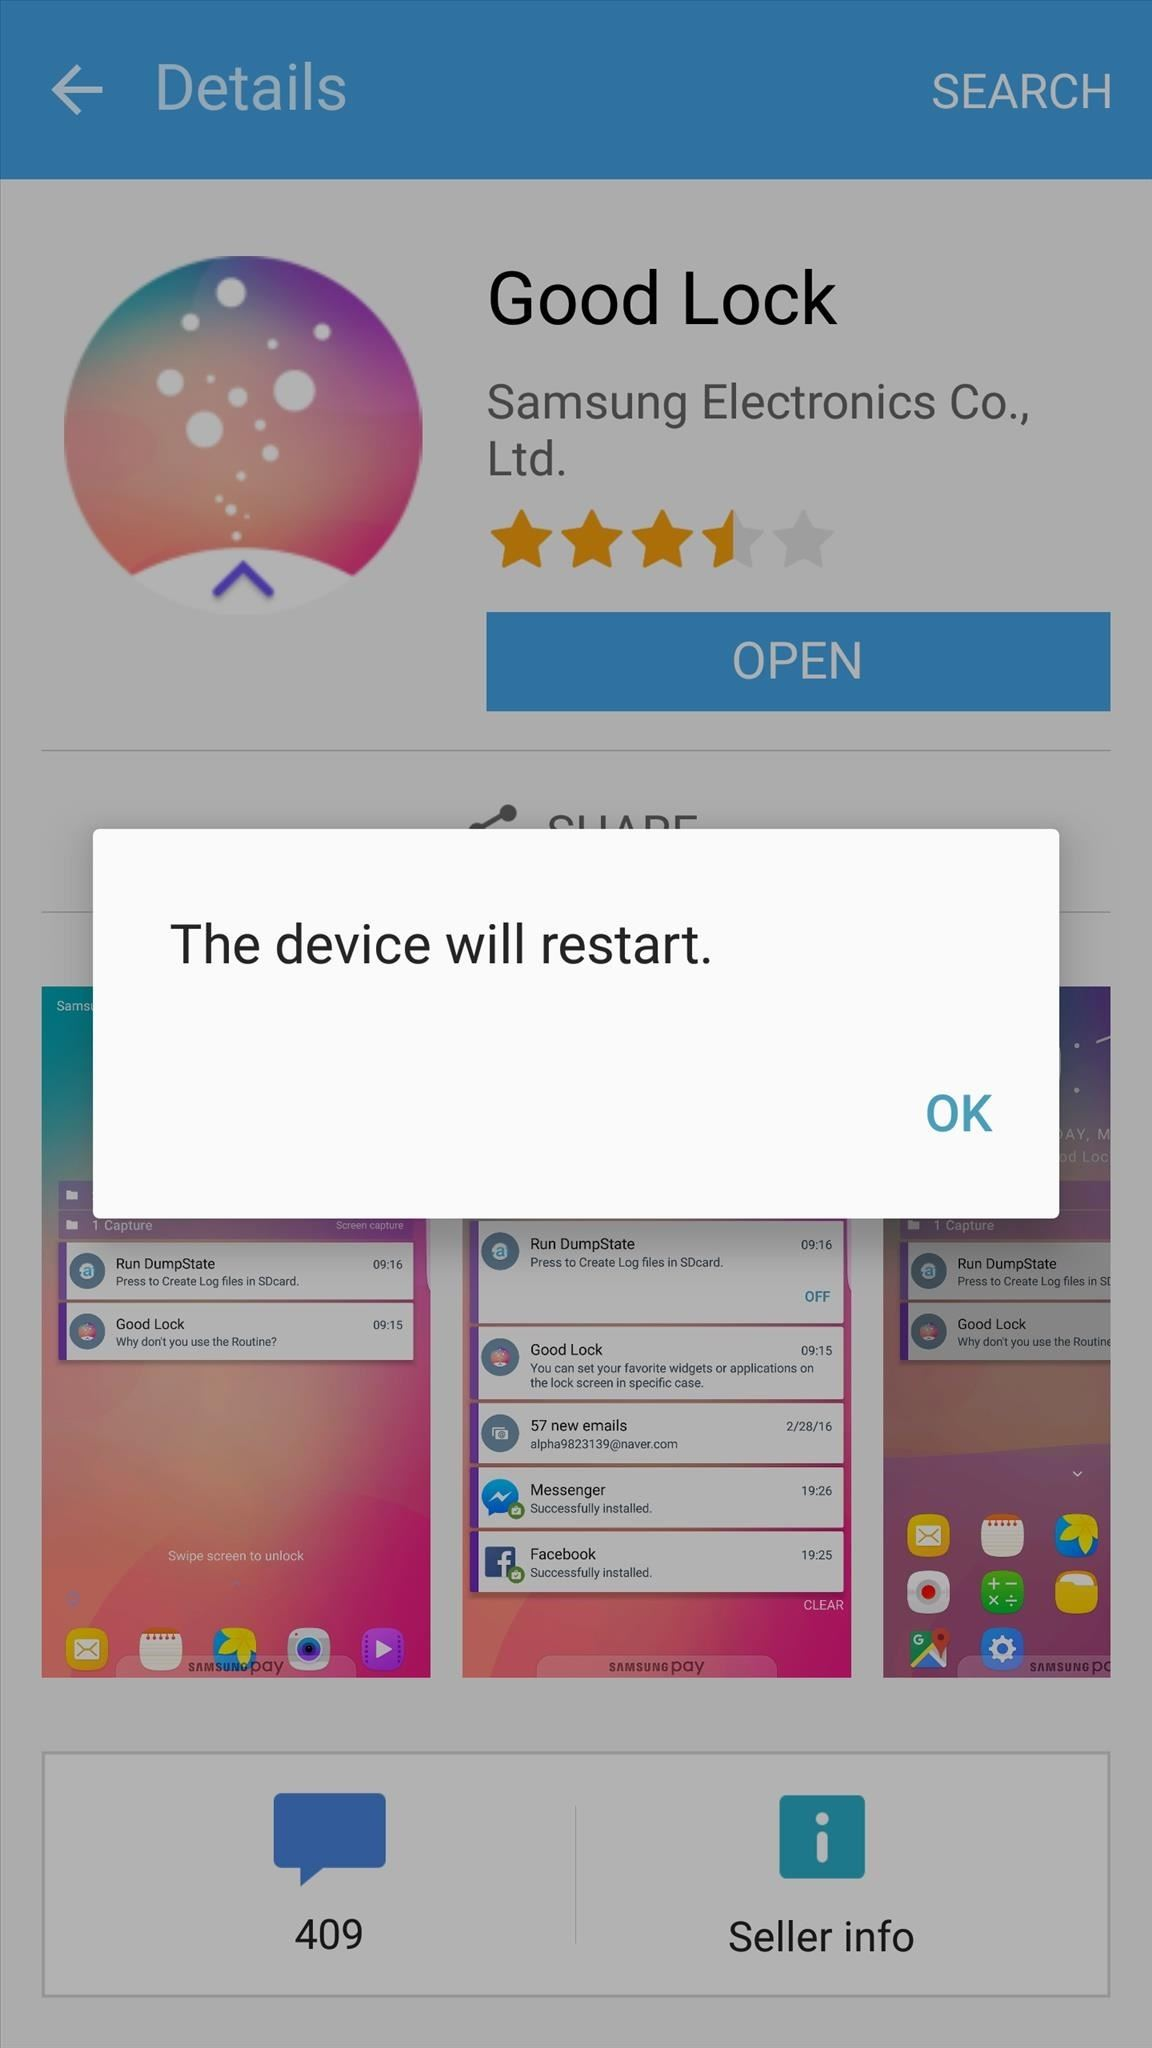 Samsung's Hidden App Lets You Drastically Change Your Galaxy's Look